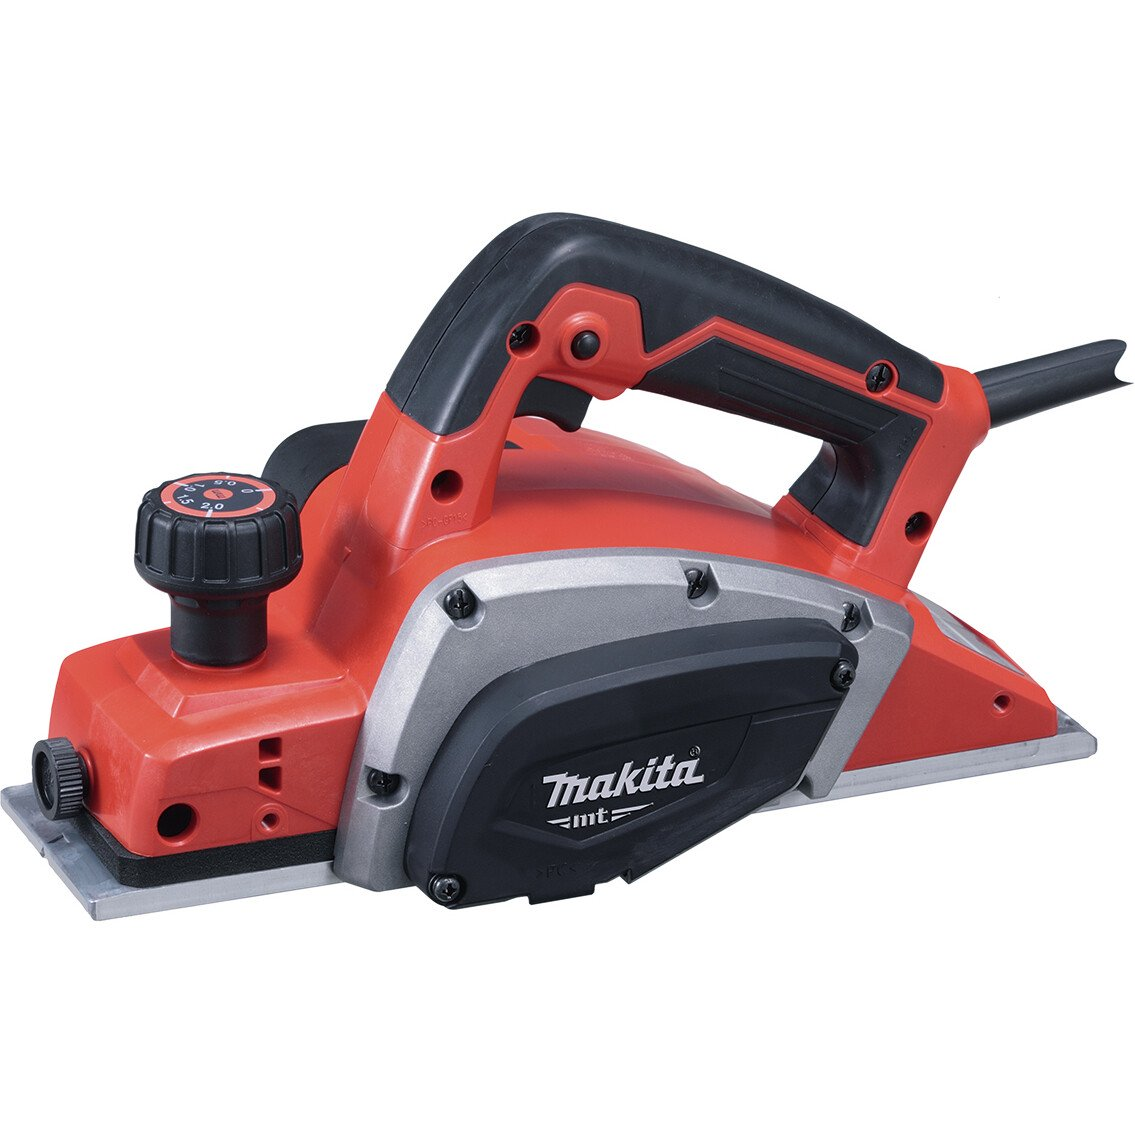 Makita M1901 MT Series 82mm Power Planer - 240v